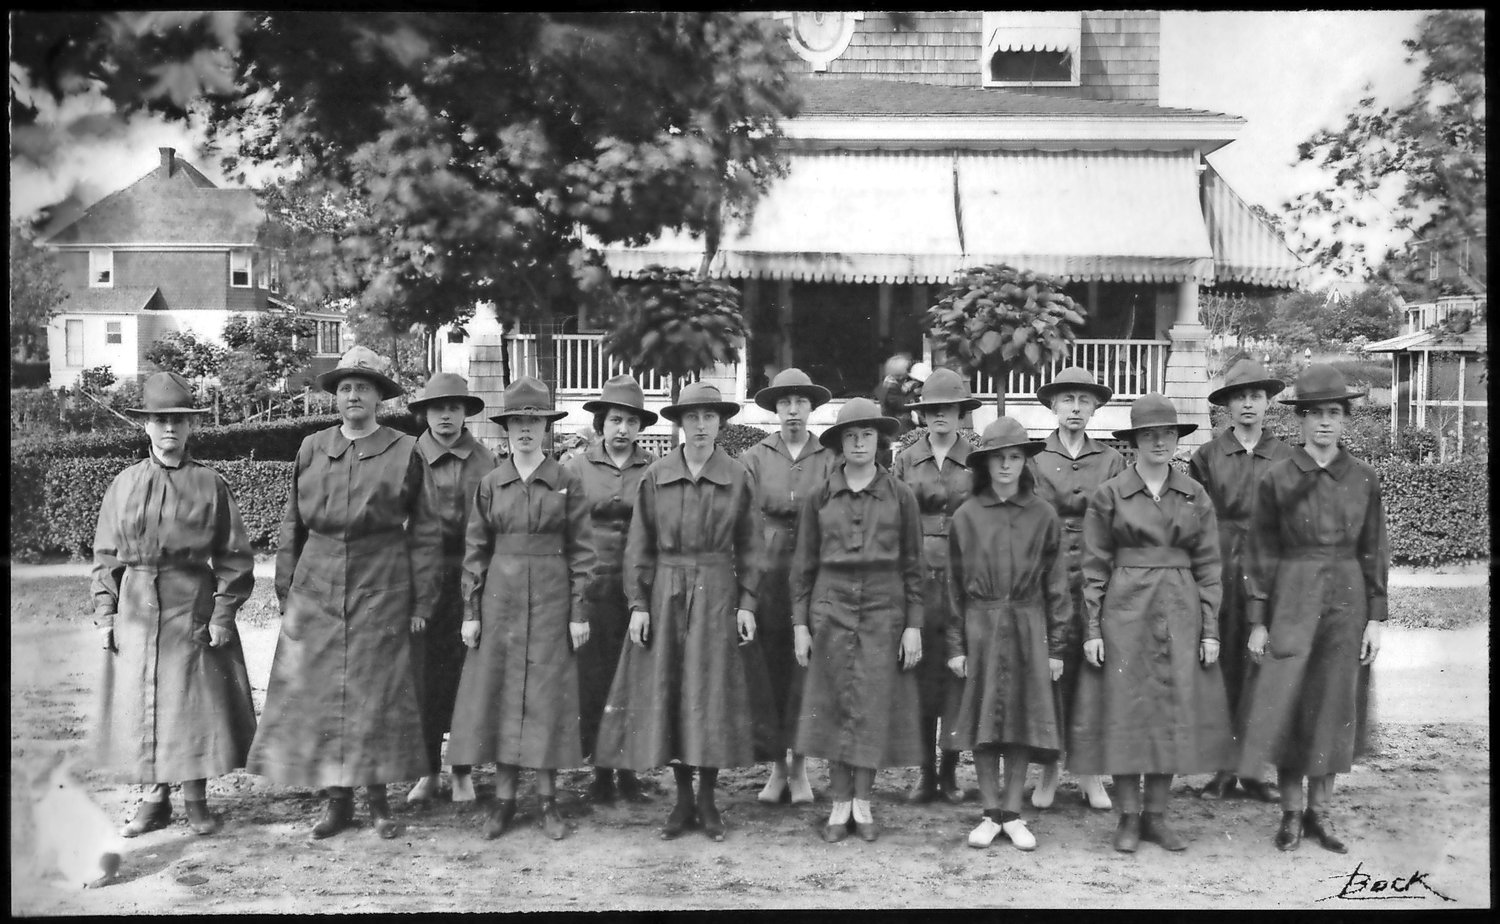 This is the first known photograph of Girl Scouts in Nassau County. The troop, records show, was based in Lynbrook.